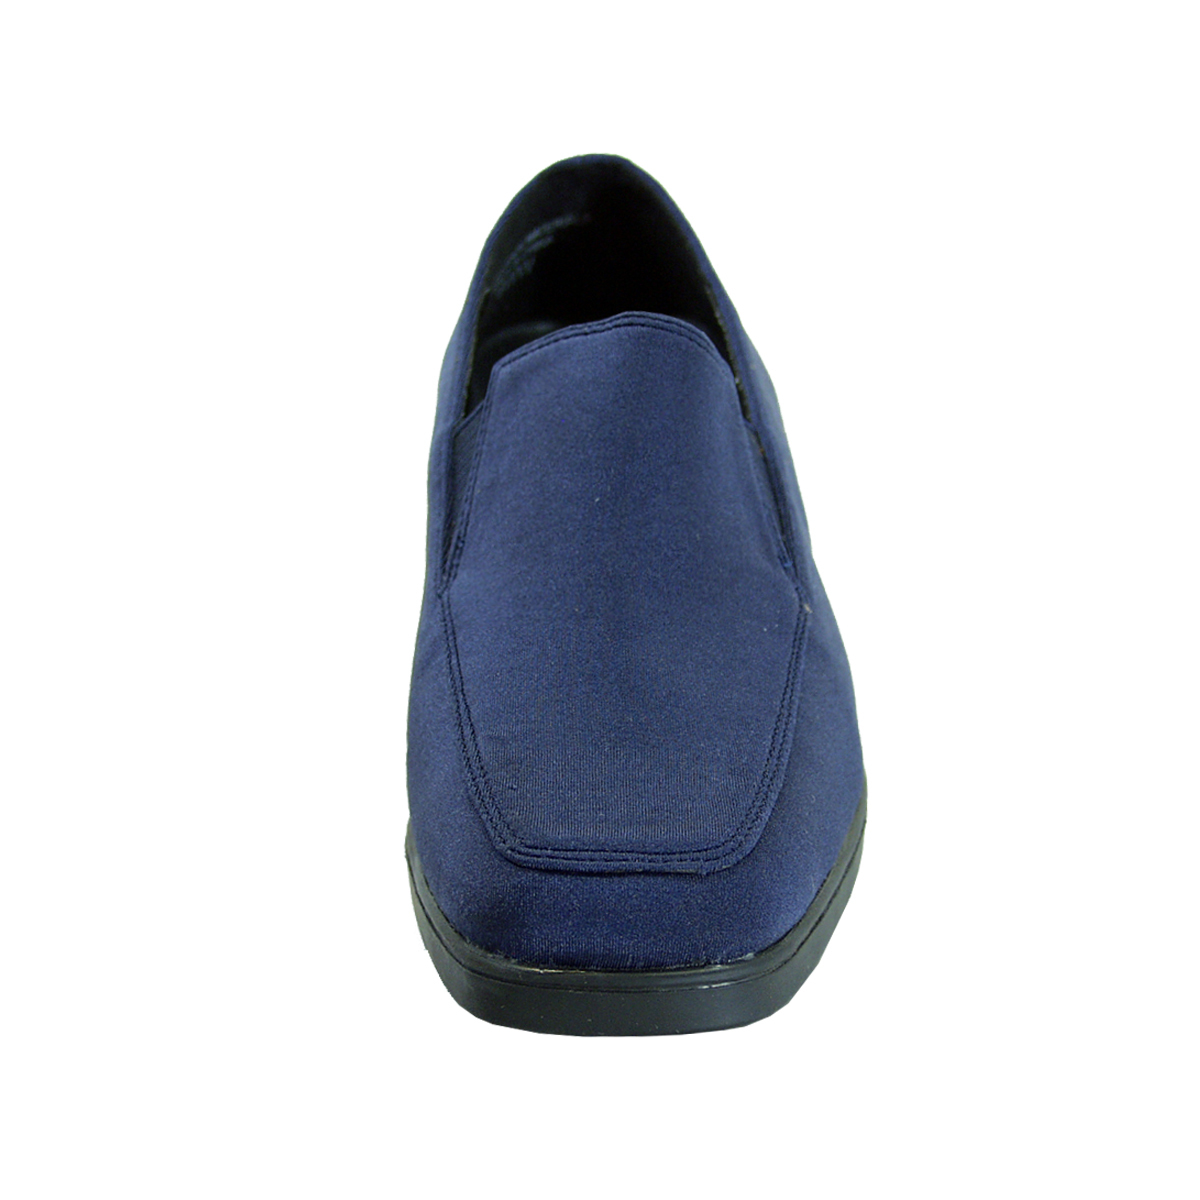 FUZZY Indie Wide Width Classic Slip On Shoes image 2